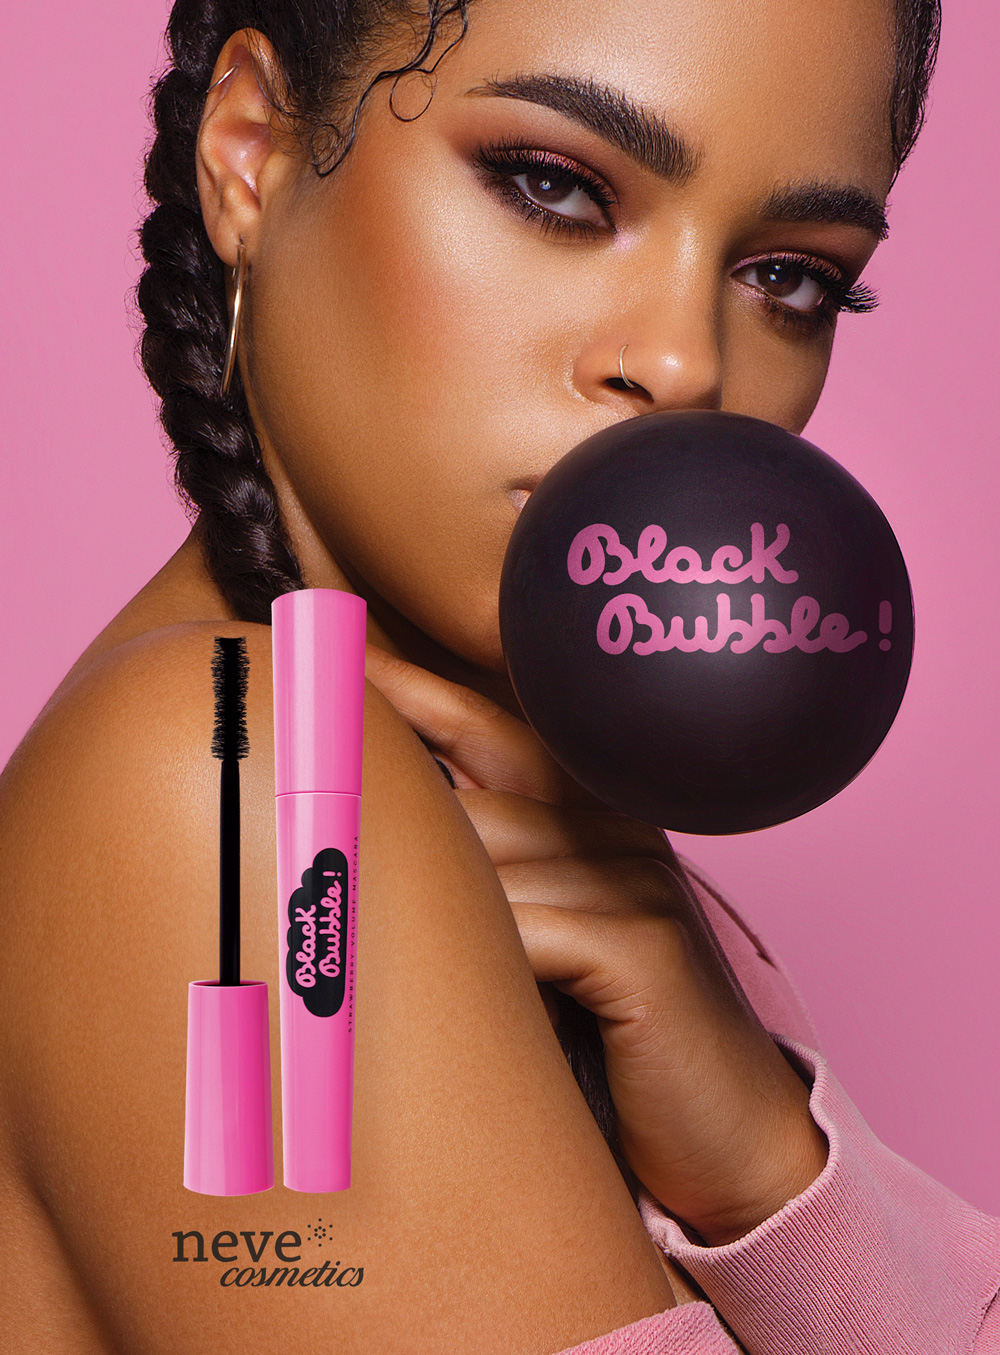 BlackBubbleMascara